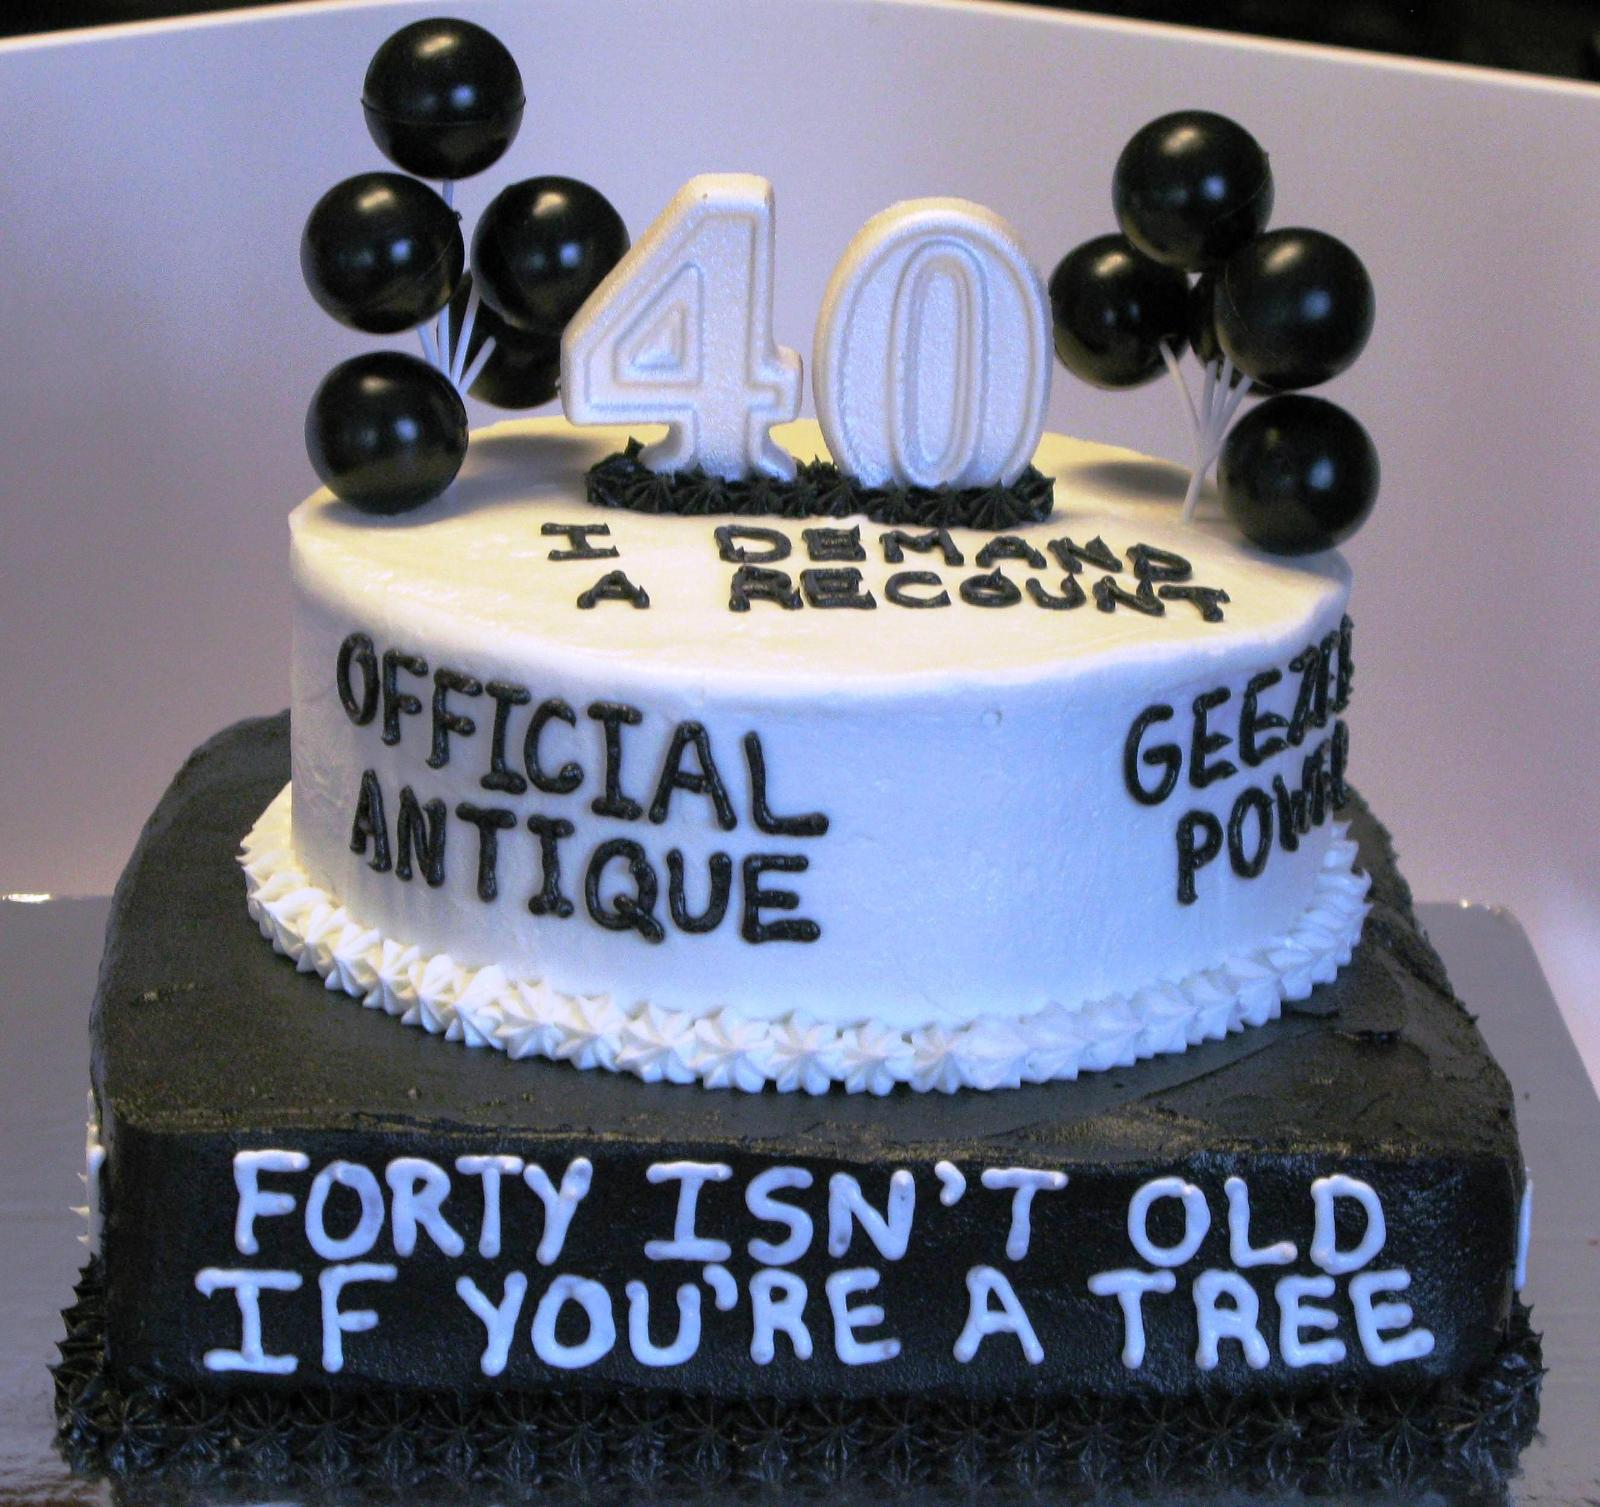 40th Birthday Cake Ideas 40th Birthday Cake Ideas Funny Protoblogr